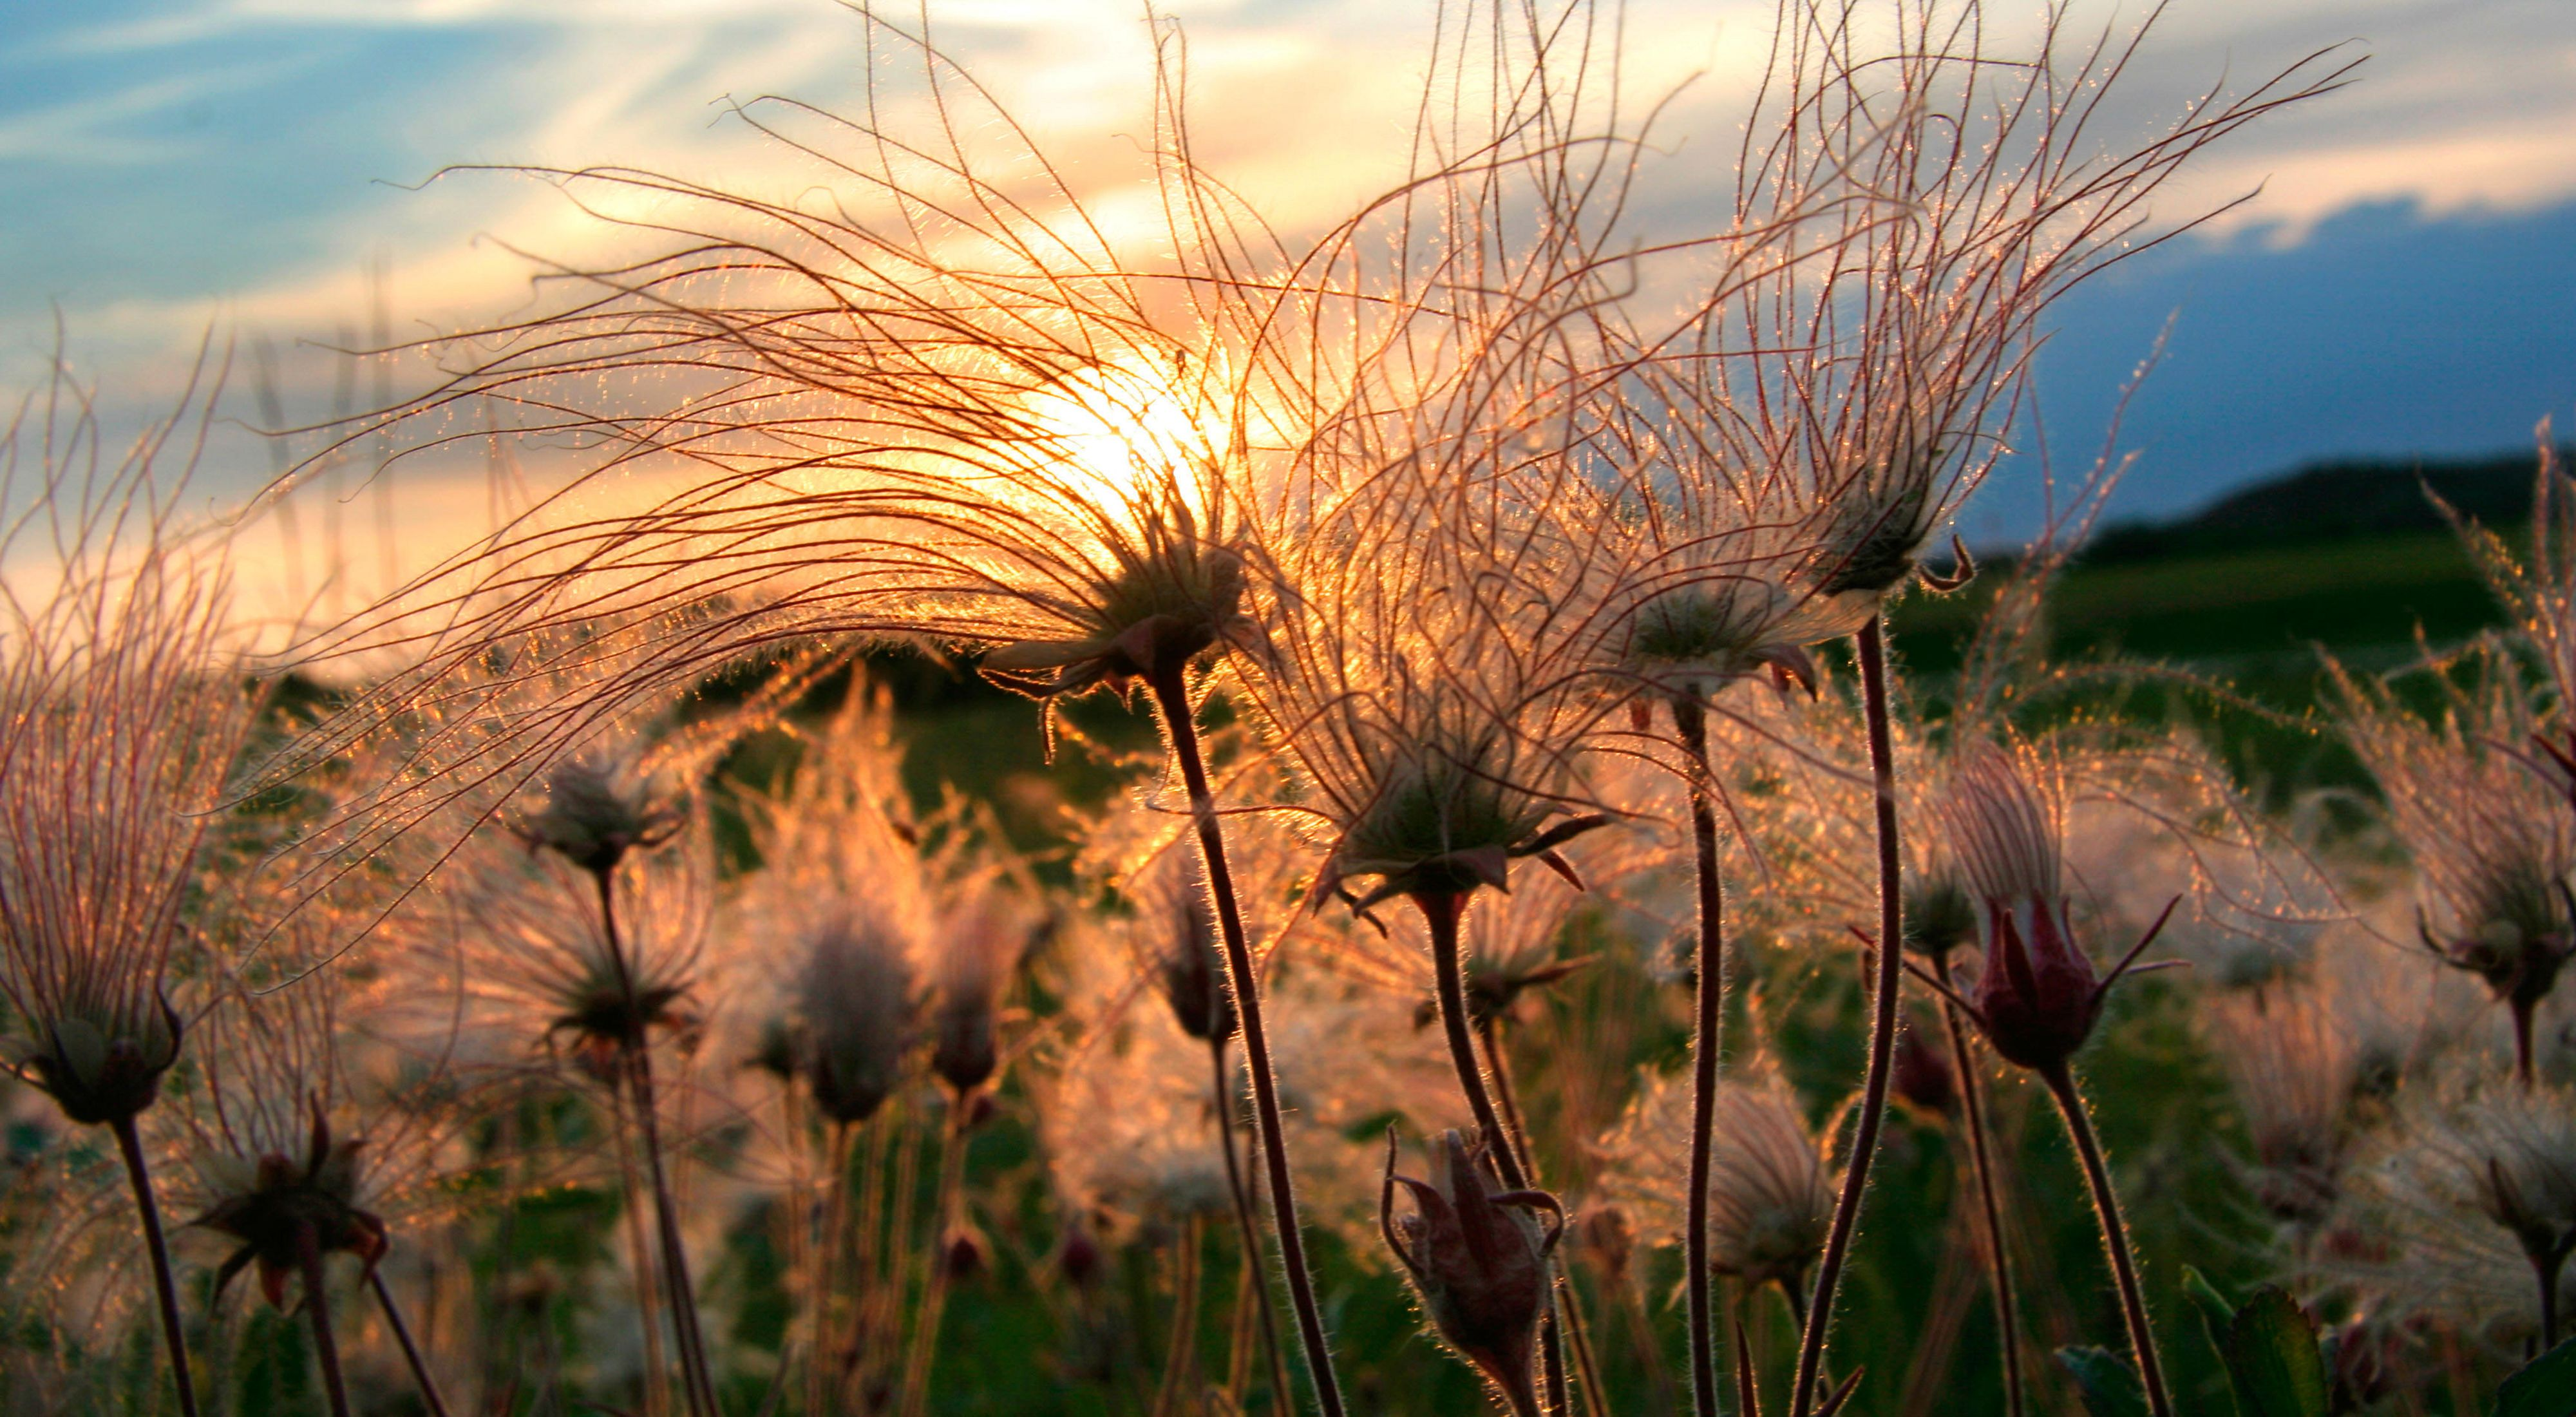 A field of Prairie Smoke—a pink wispy flower—with the sun setting in the distance beyond.